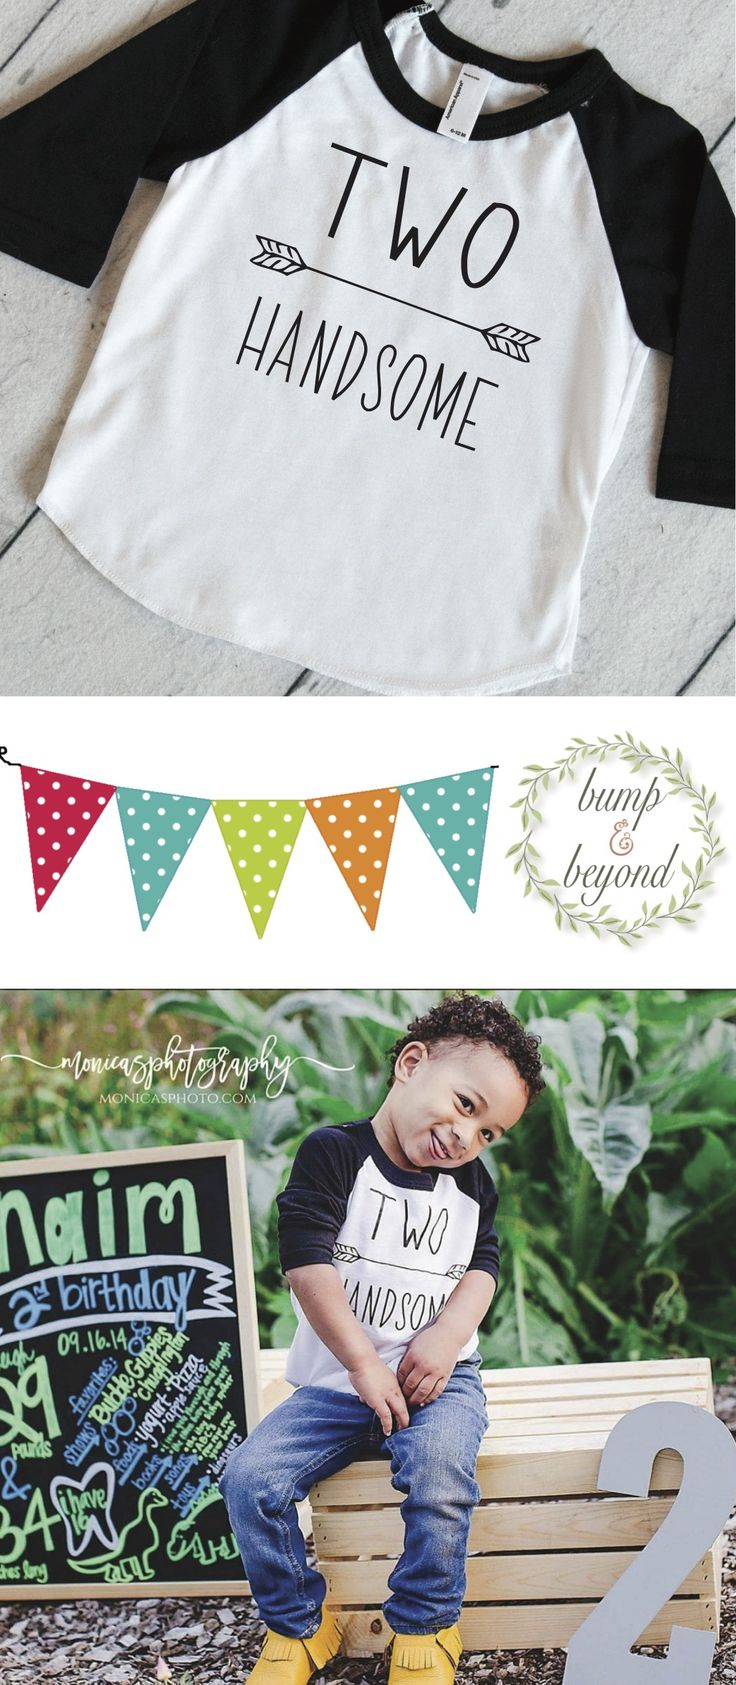 Best Boys Shirts Ideas On Pinterest Toddler Boys Baby - Mother dresses two year old son as harry styles